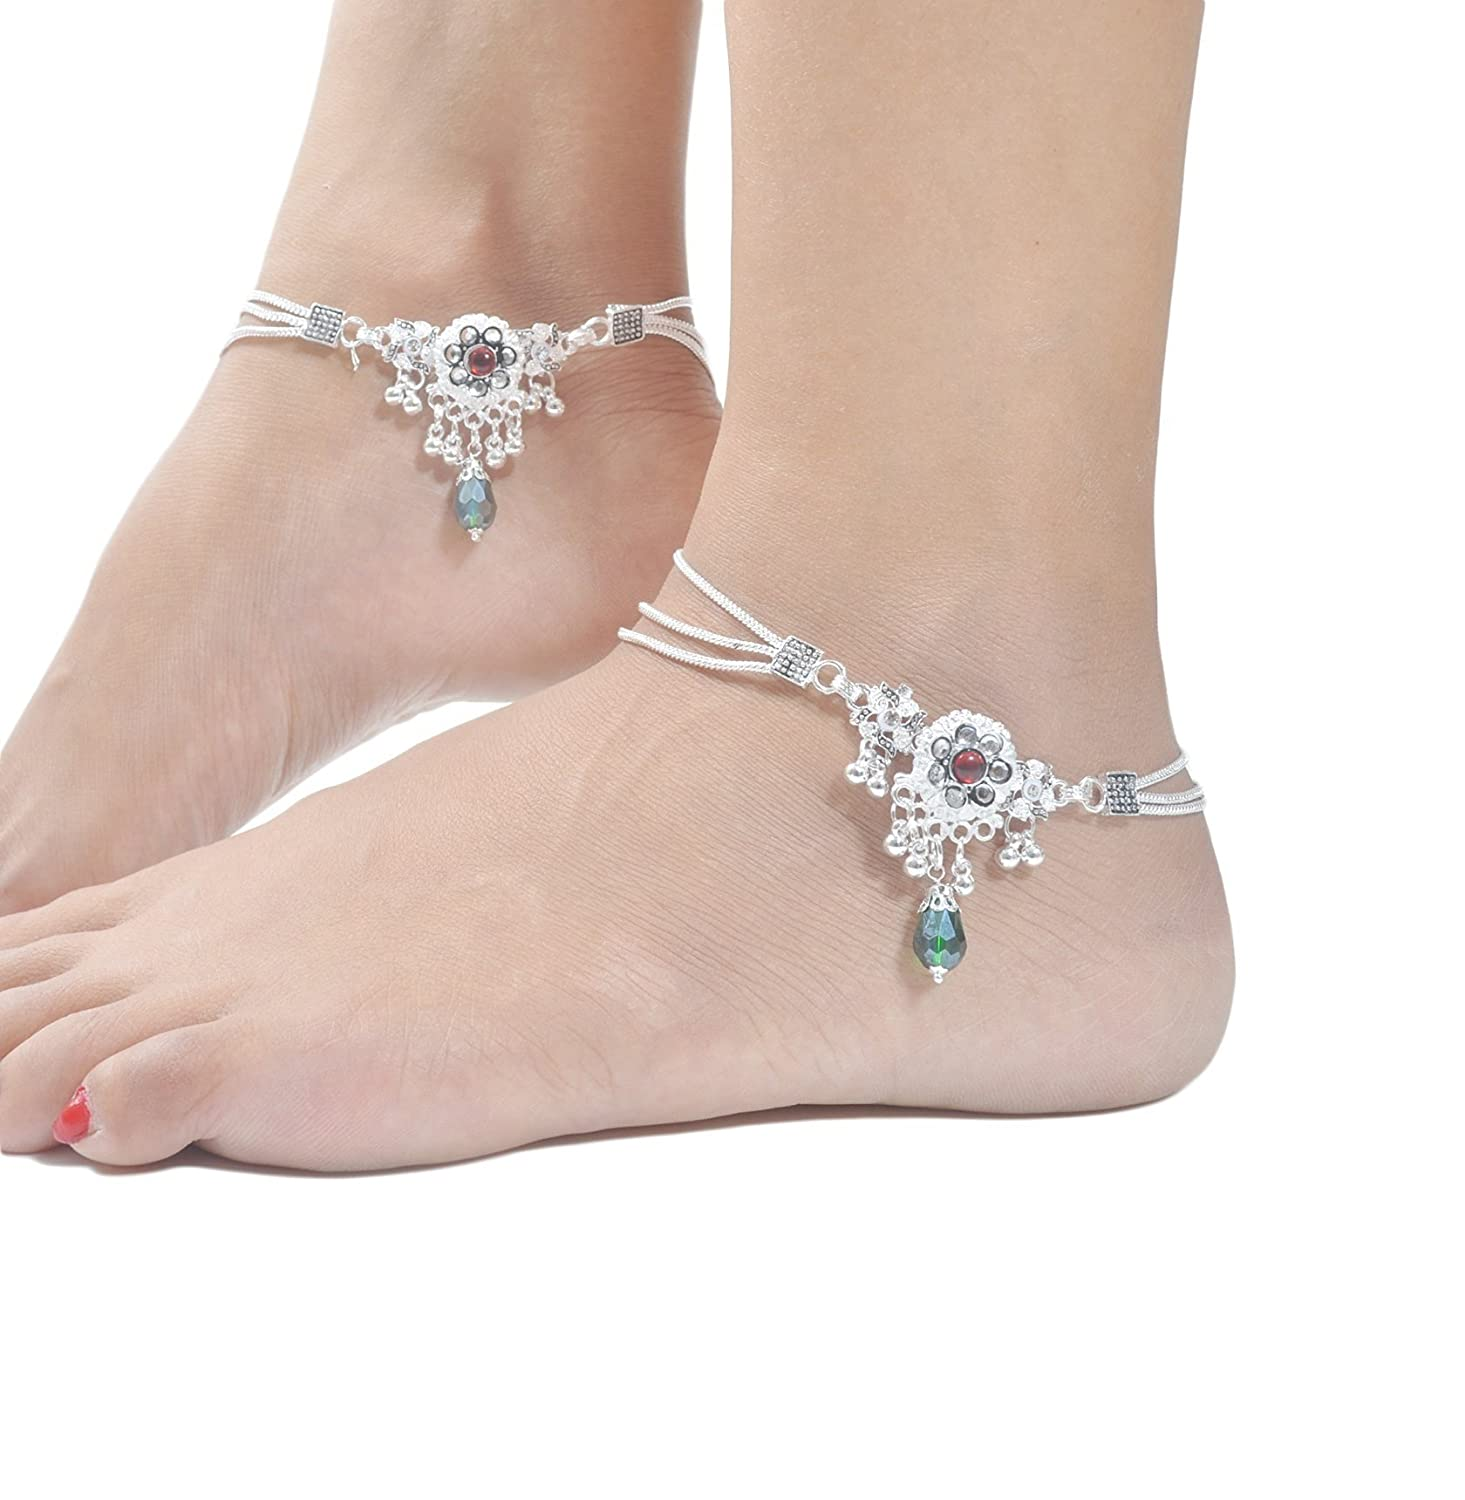 anklet silver pin flower plumeria chain fine foot sterling jewelry anklets solid